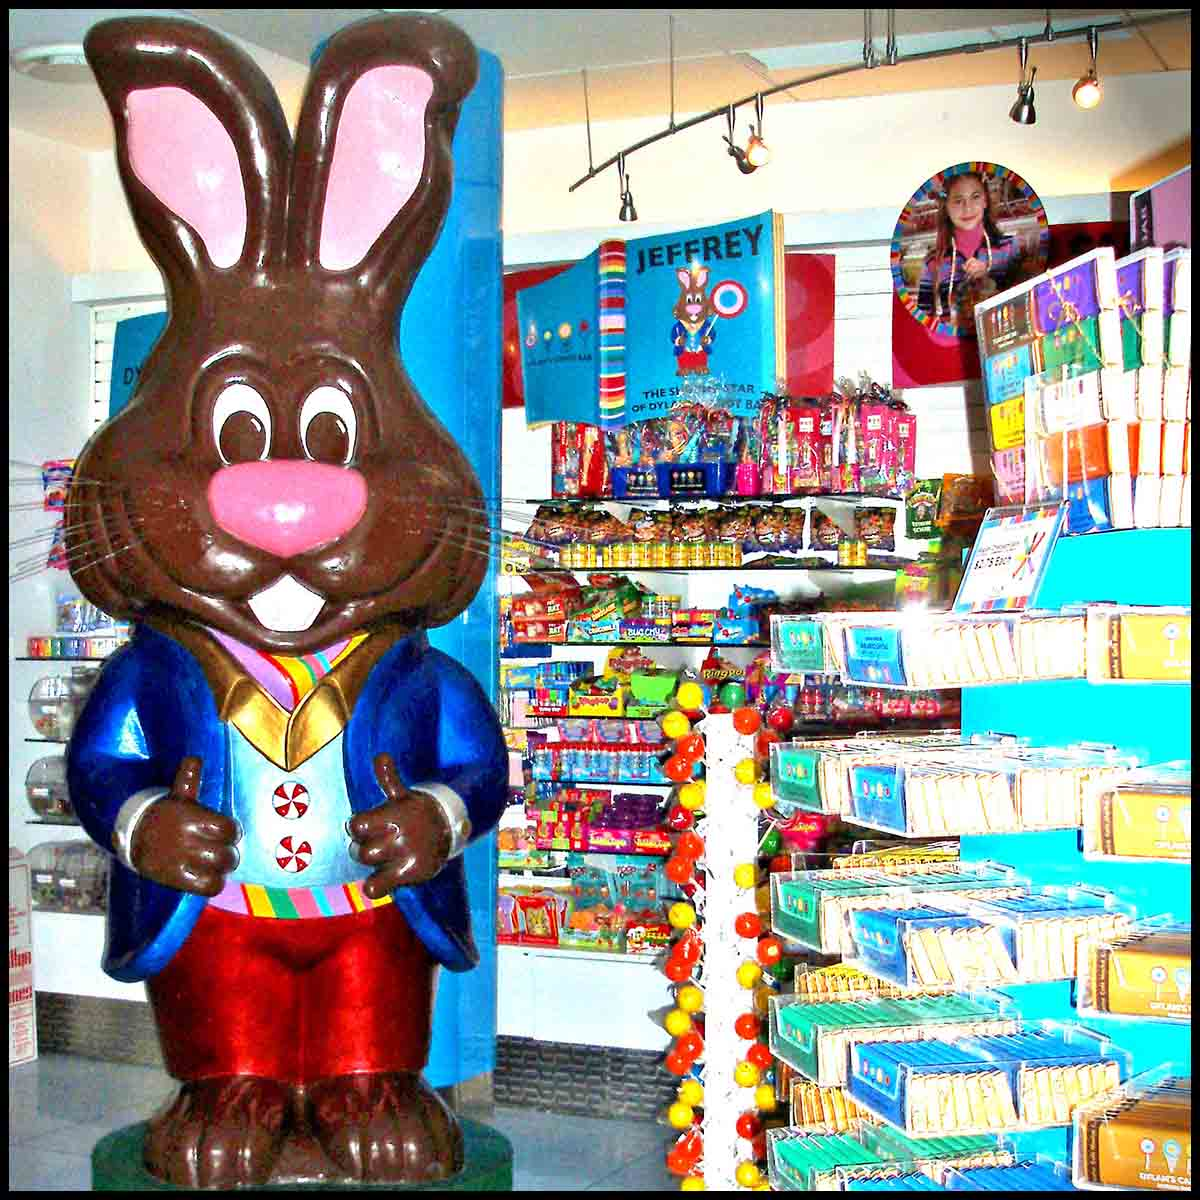 photo of large sculpture meant to look like a chocolate bunny wearing a blue suitcoat and red pants in a candy store